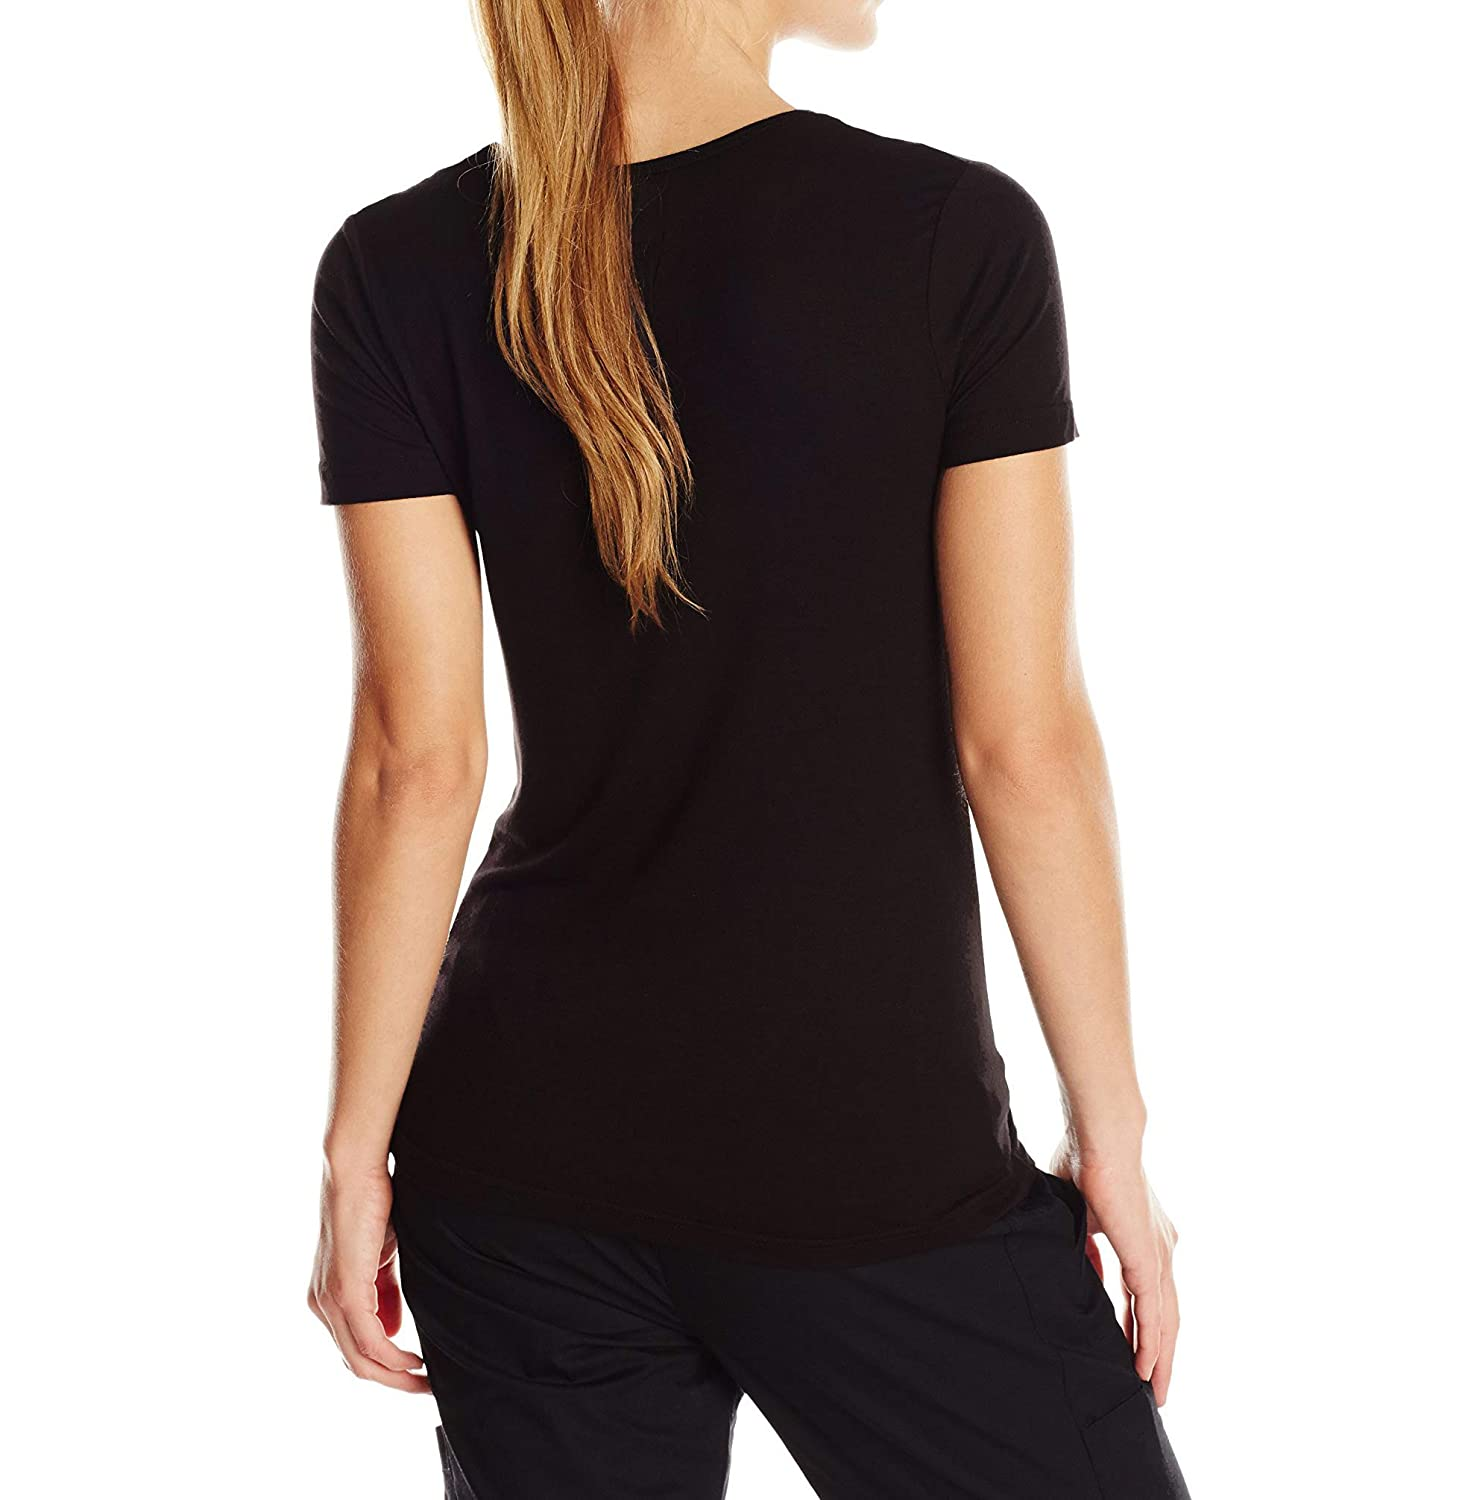 Xuforget Buzzcocks A Different Kind of Tension Female Casual Short Sleeve T-Shirt